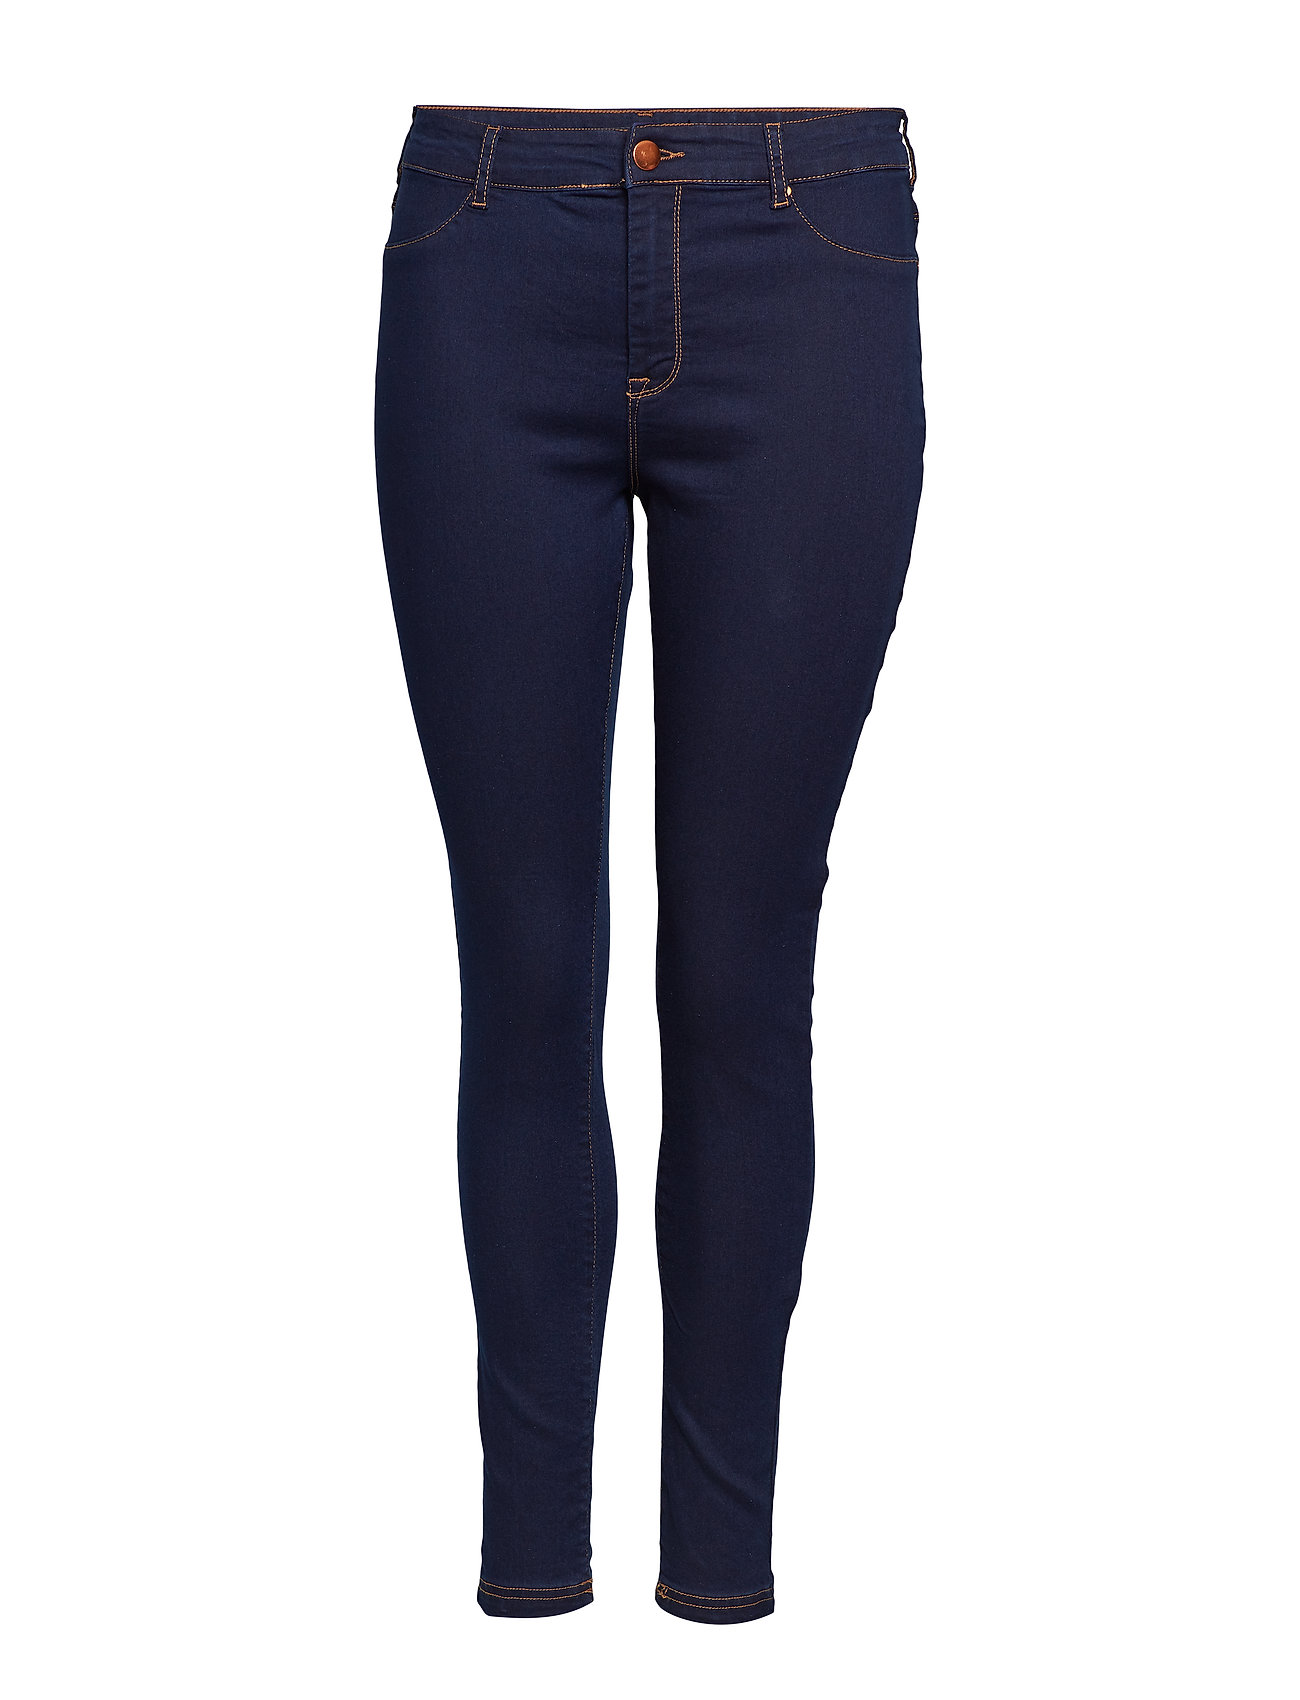 Zizzi JANNA, LONG, JEGGING - DARK BLUE